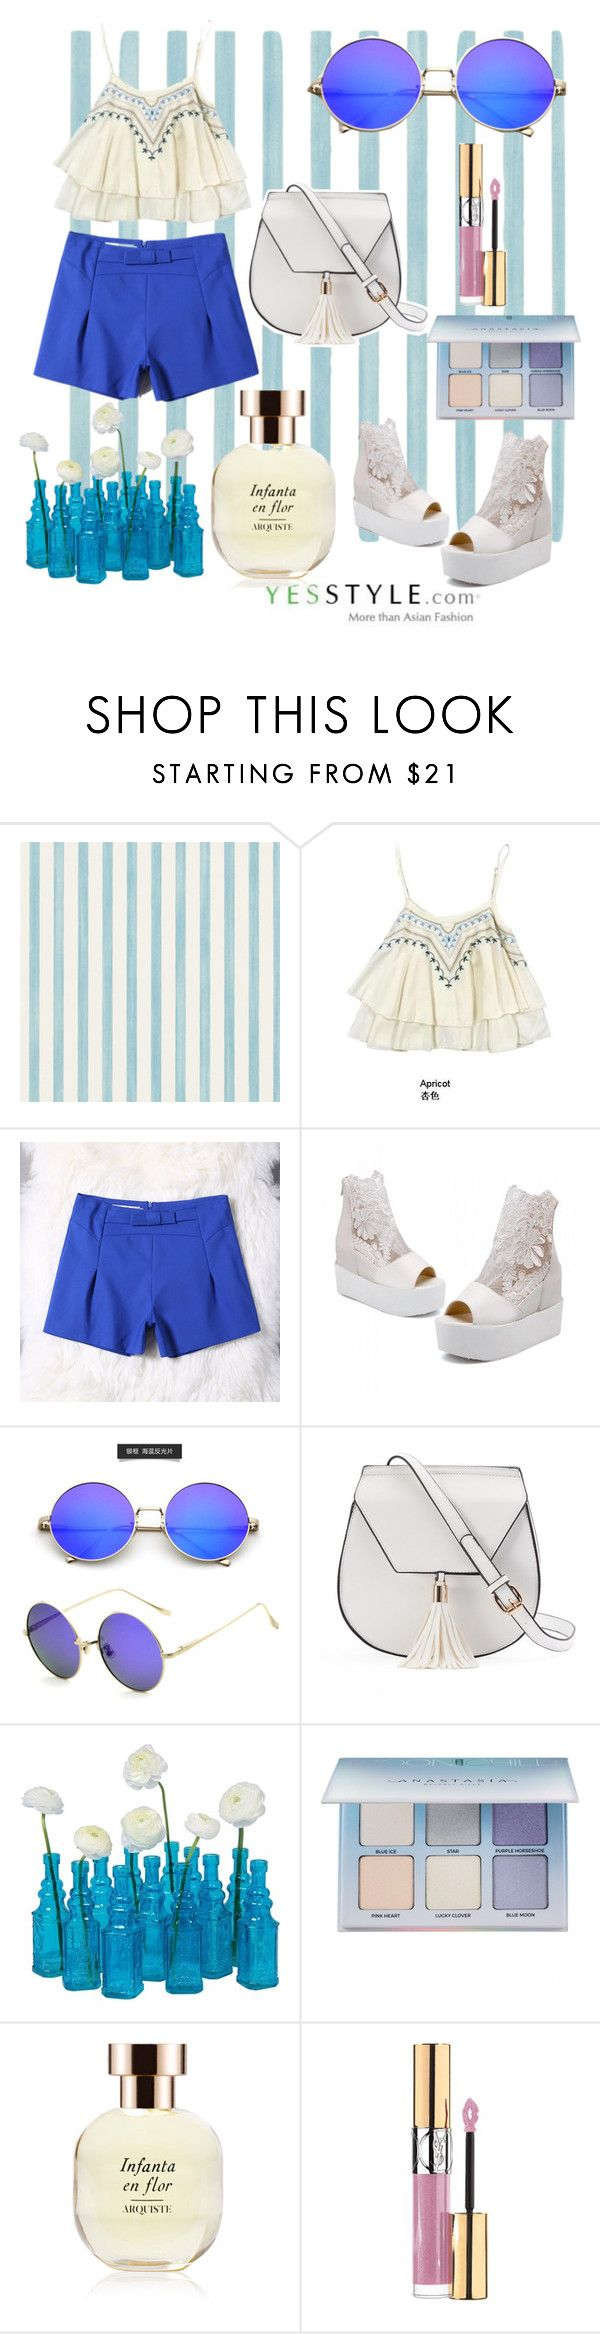 """Off shoulder for Summer and WIN US$40 YesStyle coupon!"" by anicagrbesa ❤ liked on Polyvore featuring Christian Lacroix, Kotiro, JY Shoes, Yoki, Cultural Intrigue, Anastasia Beverly Hills, Arquiste Parfumeur, Yves Saint Laurent, Summer and off"